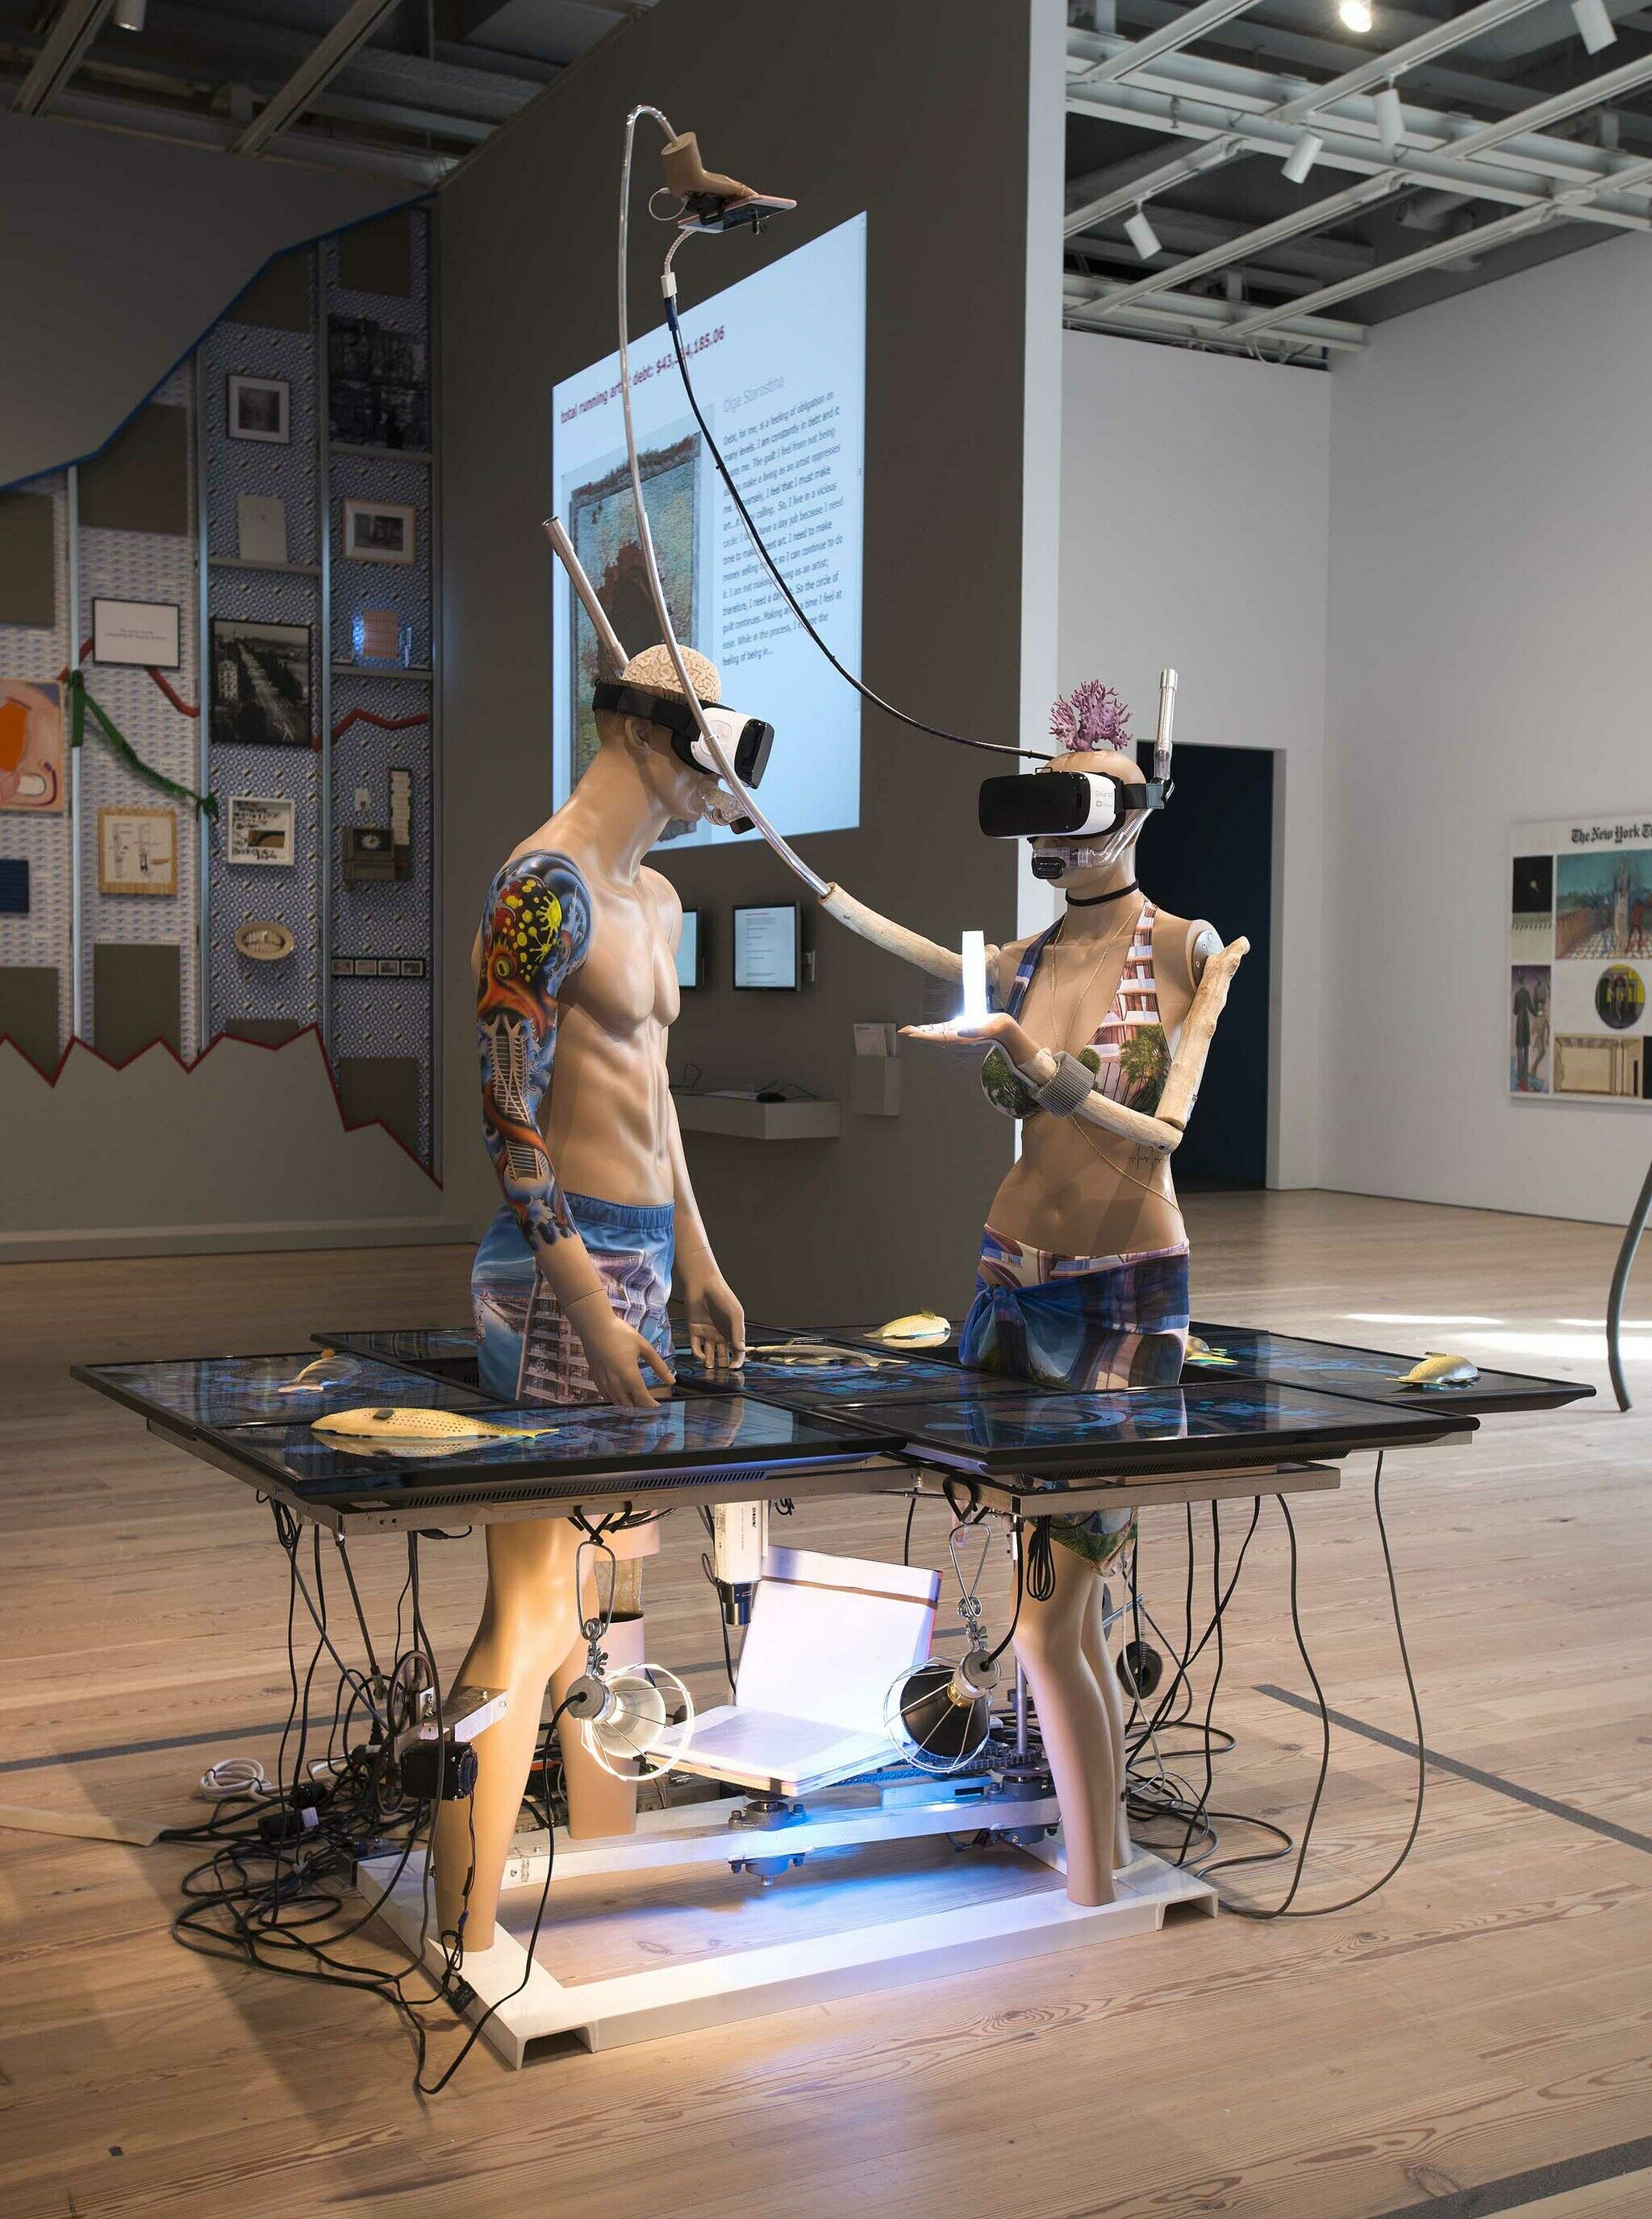 Two sculptures of figures wearing VR headsets displayed in a gallery.